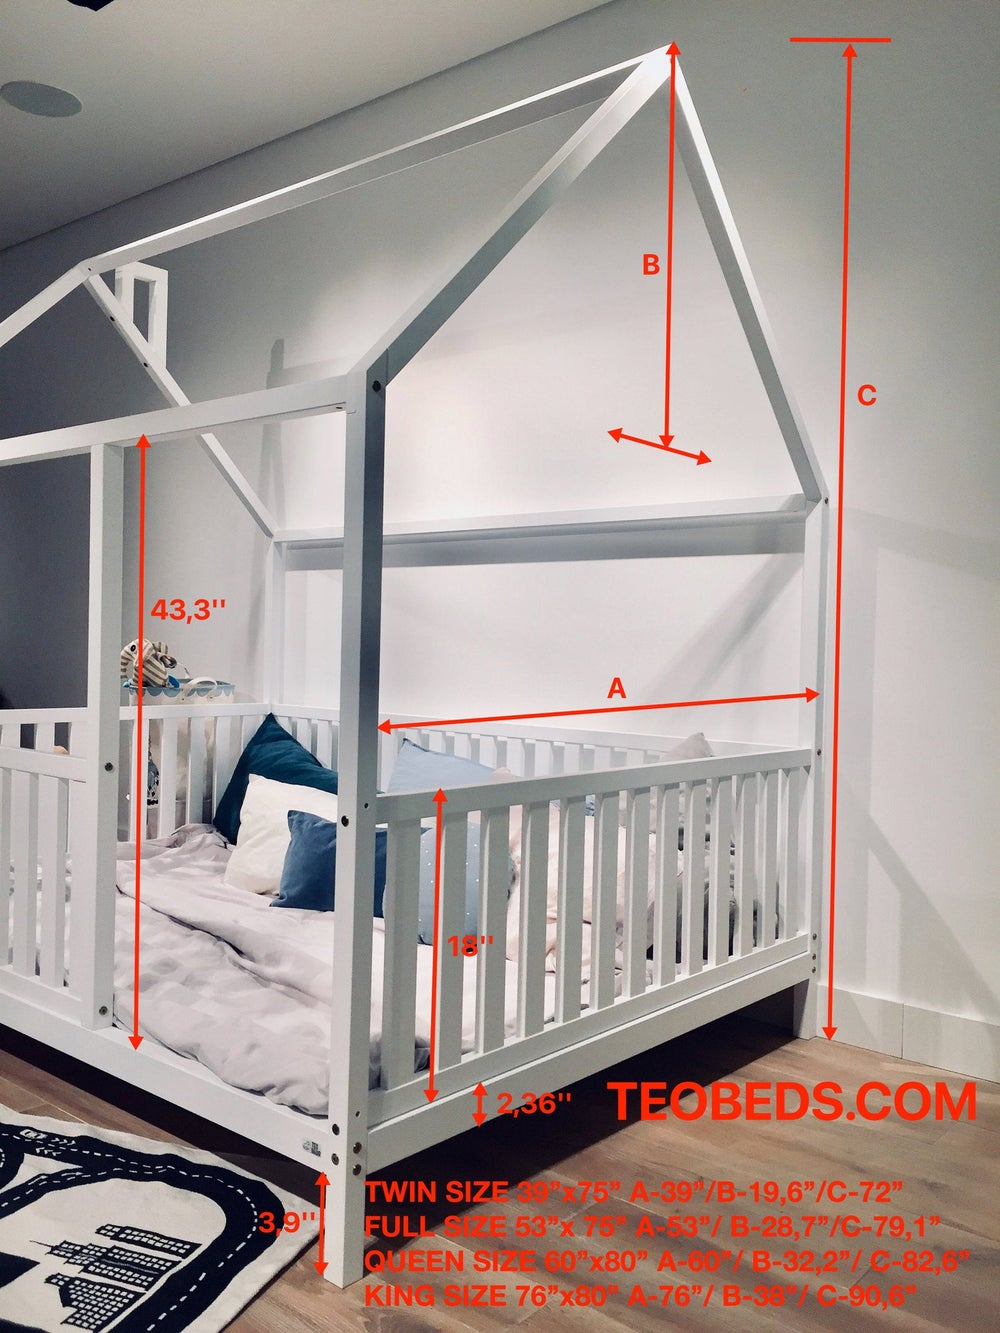 FULL Size toddler bed 53''x75'' with bed rails Teo Beds FREE SHIPPING